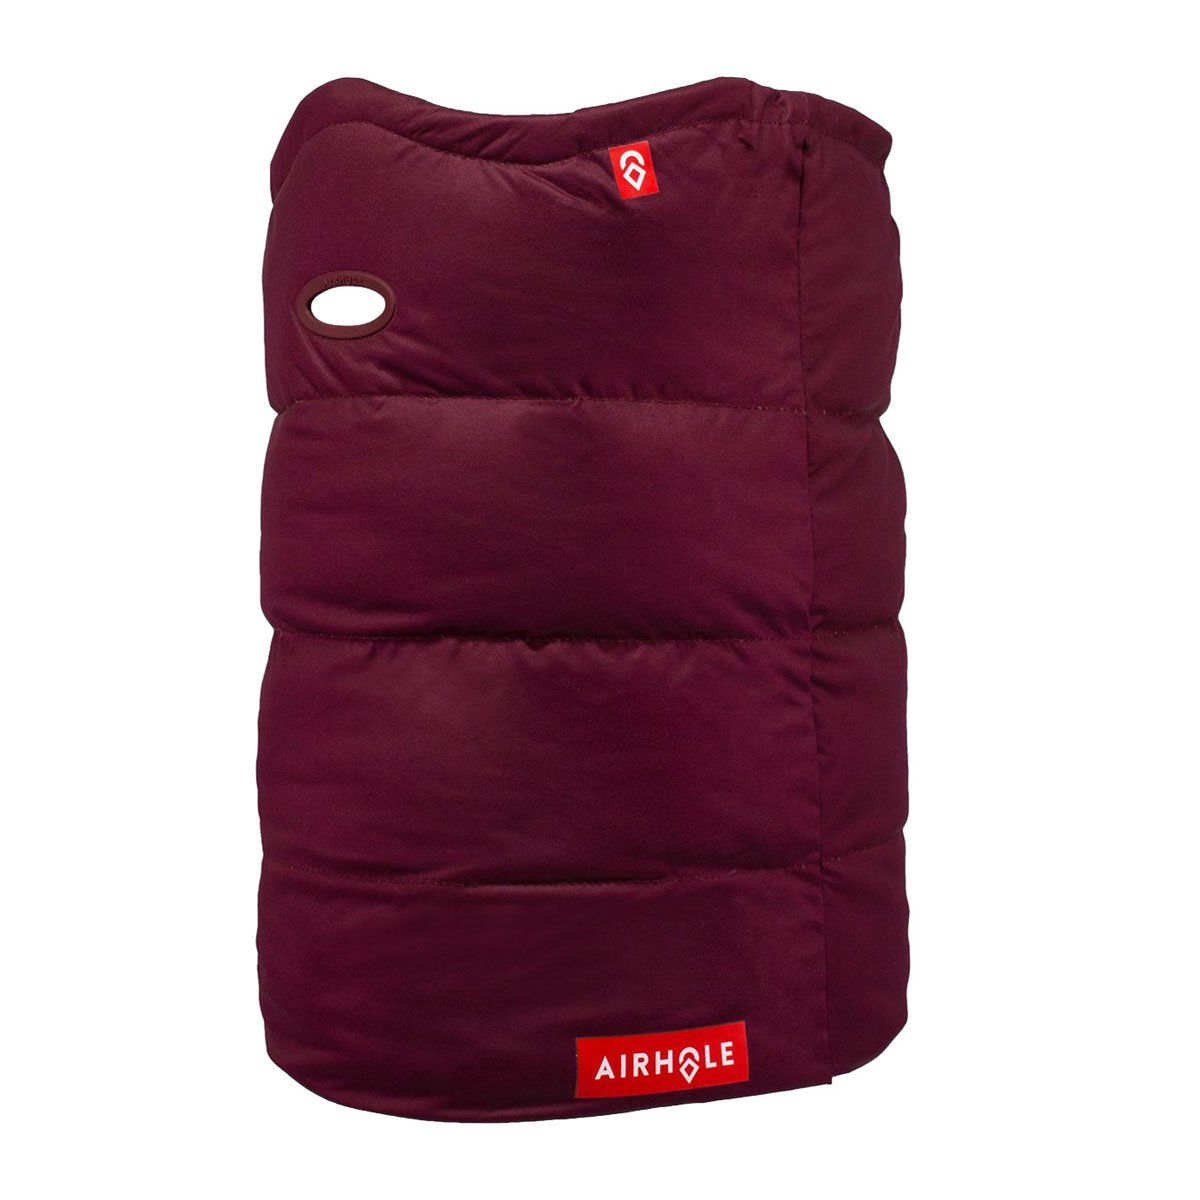 Airtube Cinch - Insulated